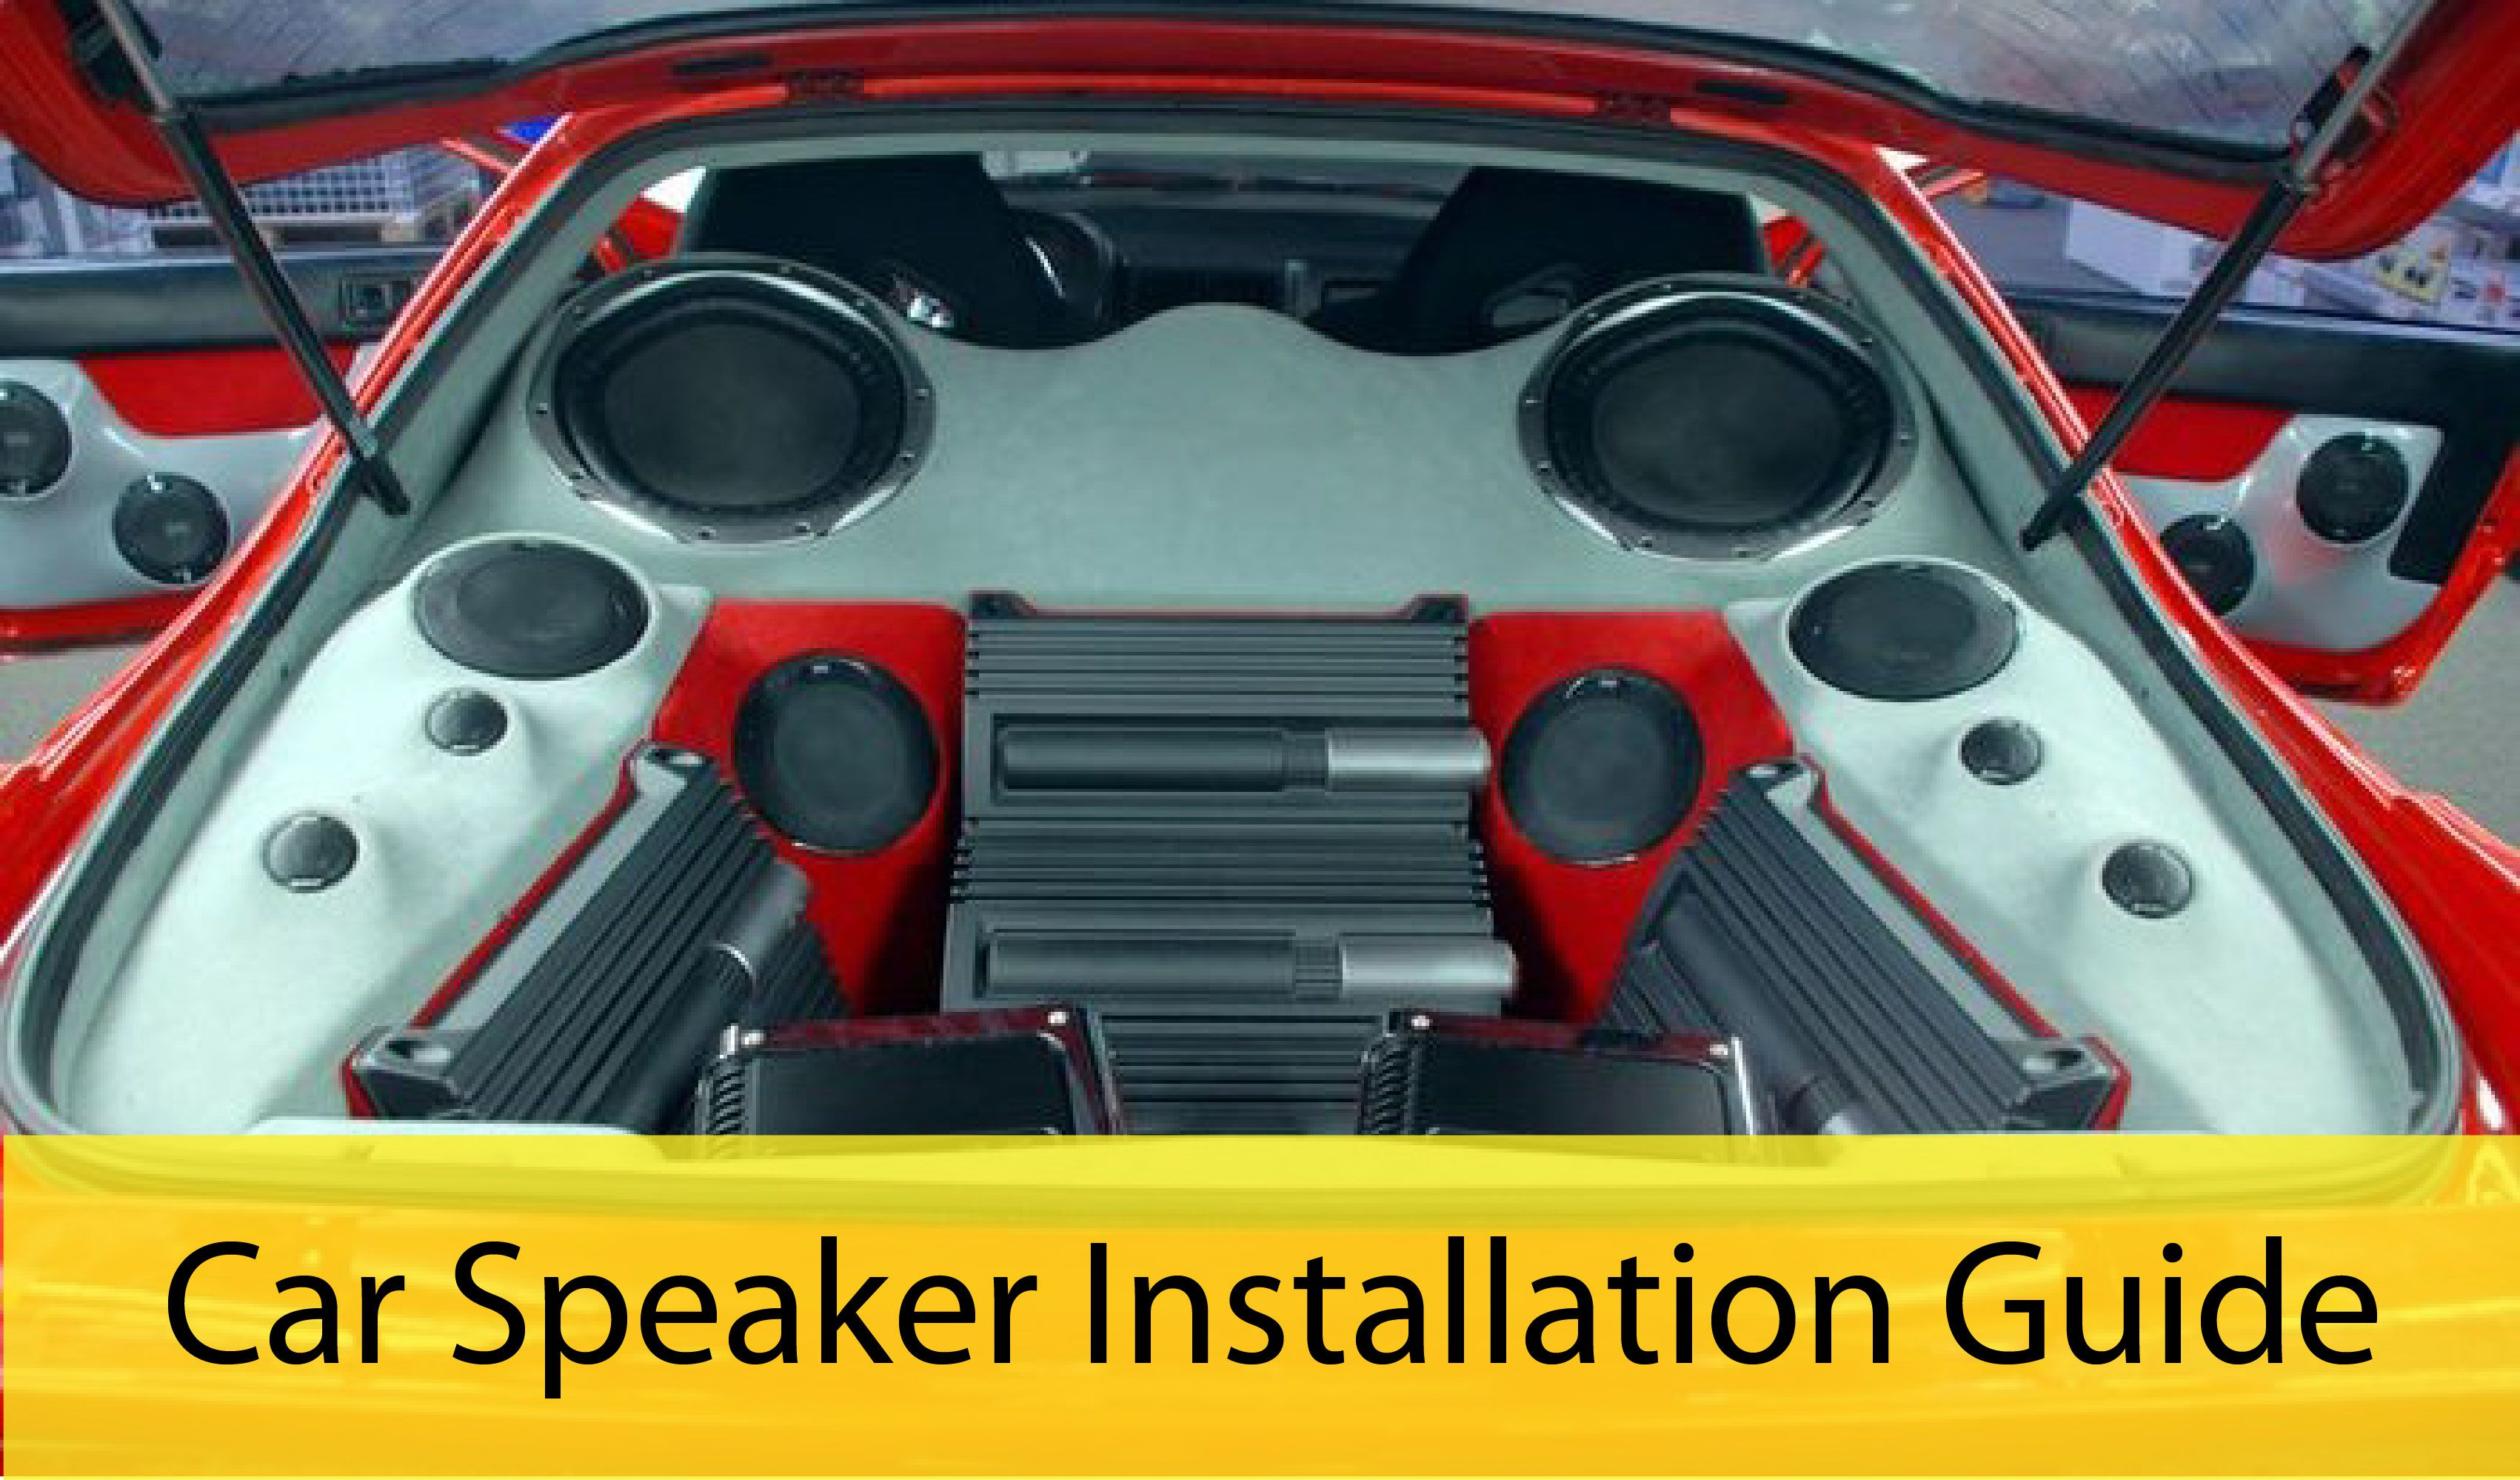 Pin By Nhi Levy On Auto Works Nj Pinterest Cars Car Speaker Installation